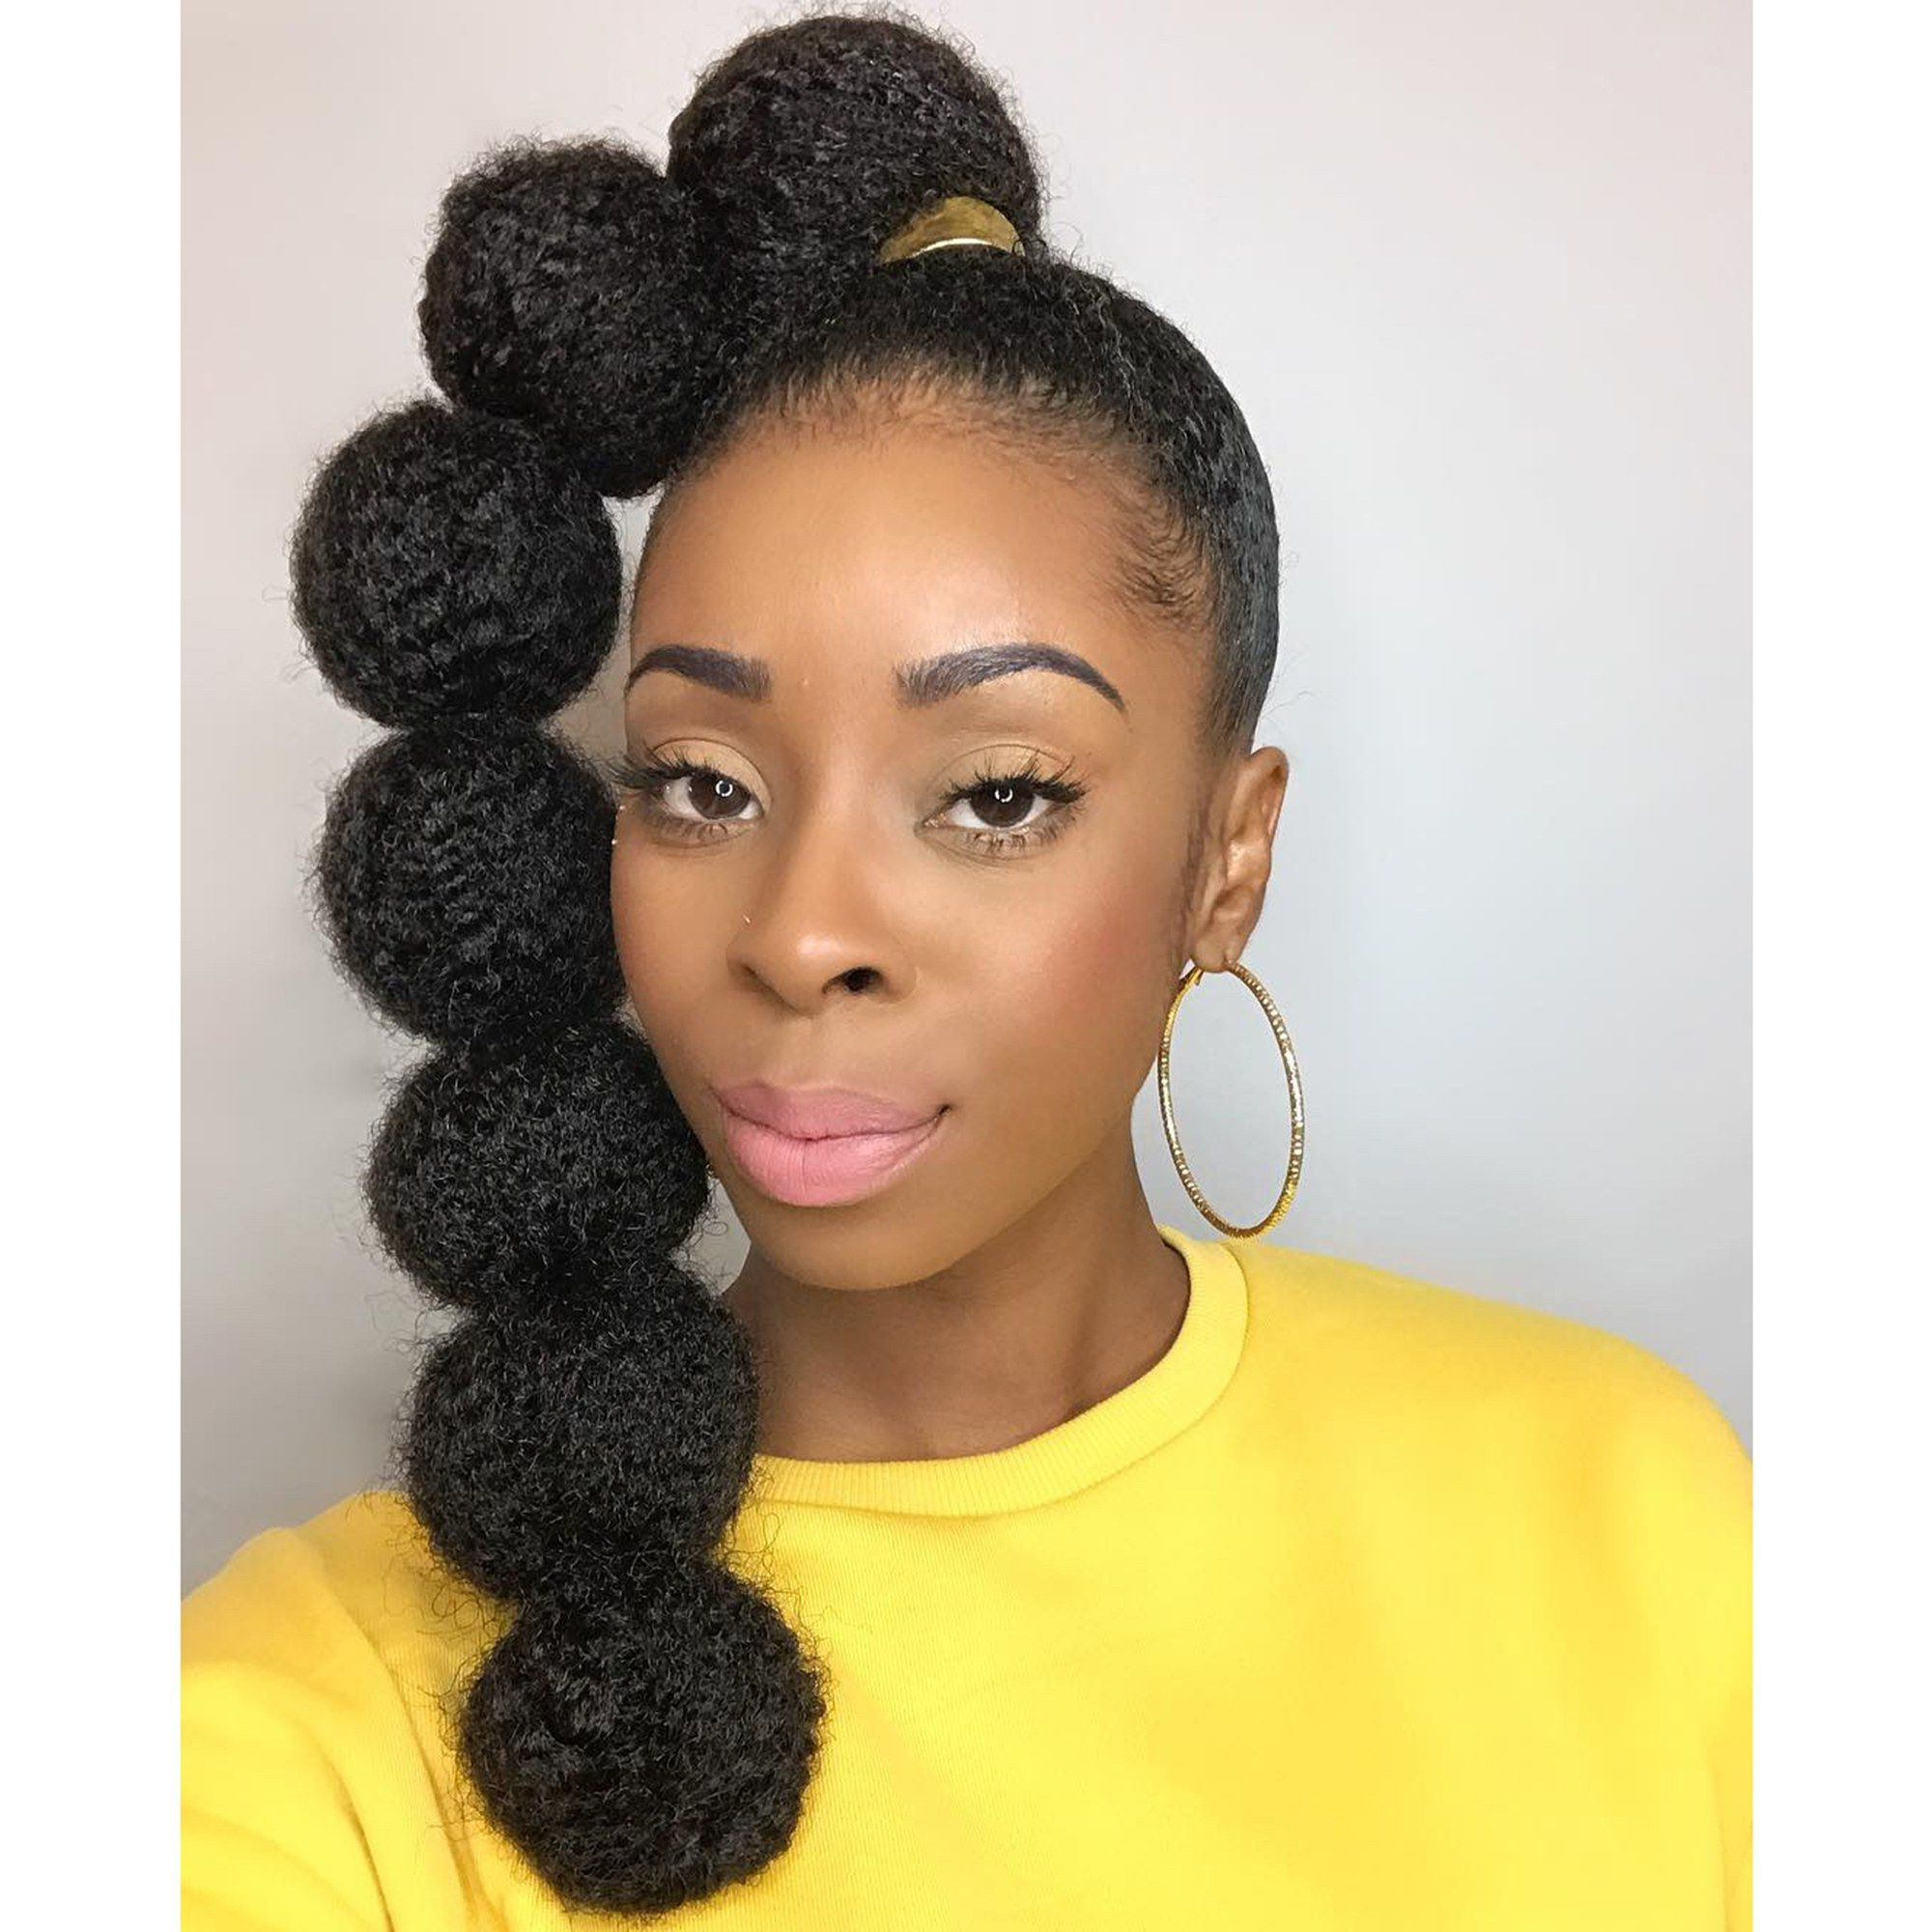 Afro Puff Bubble Ponytails Are Trending On Instagram With Regard To Well Known Bubble Pony Updo Hairstyles (View 13 of 20)